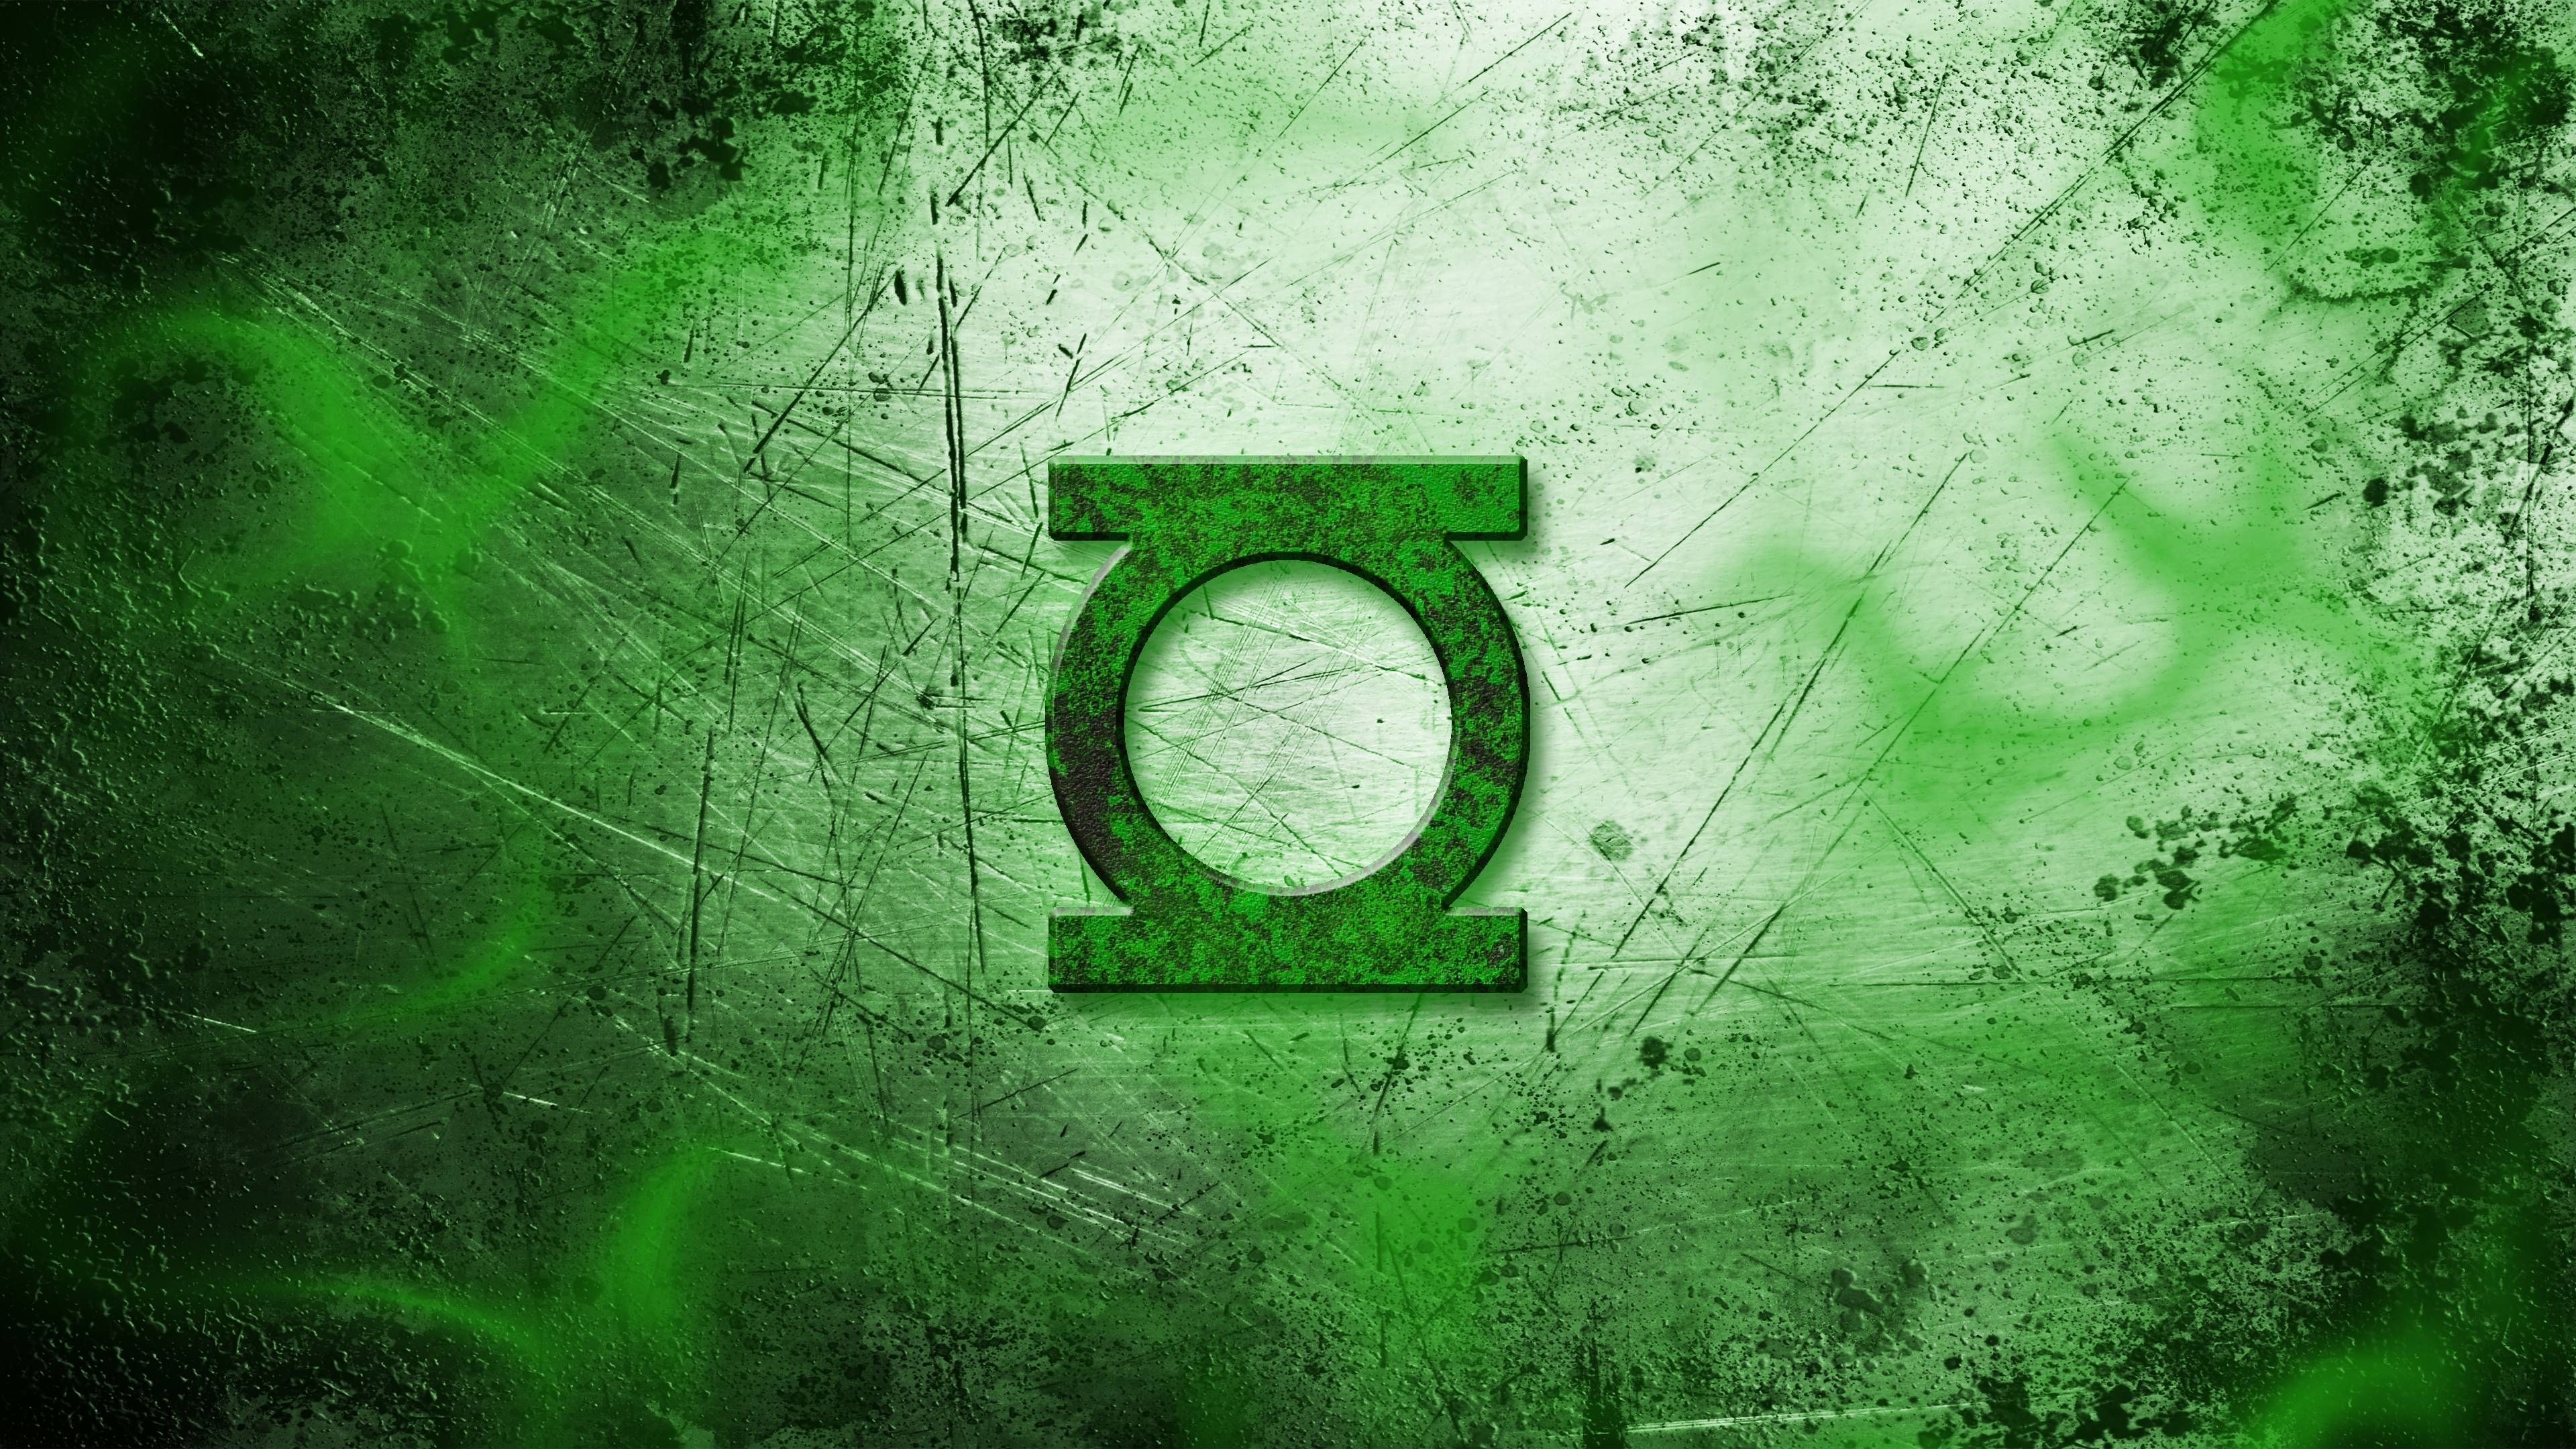 10 Most Popular Green Lantern Wallpaper Hd Full Hd 1080p For Pc Desktop Green Lantern Wallpaper Green Lantern Green Wallpaper